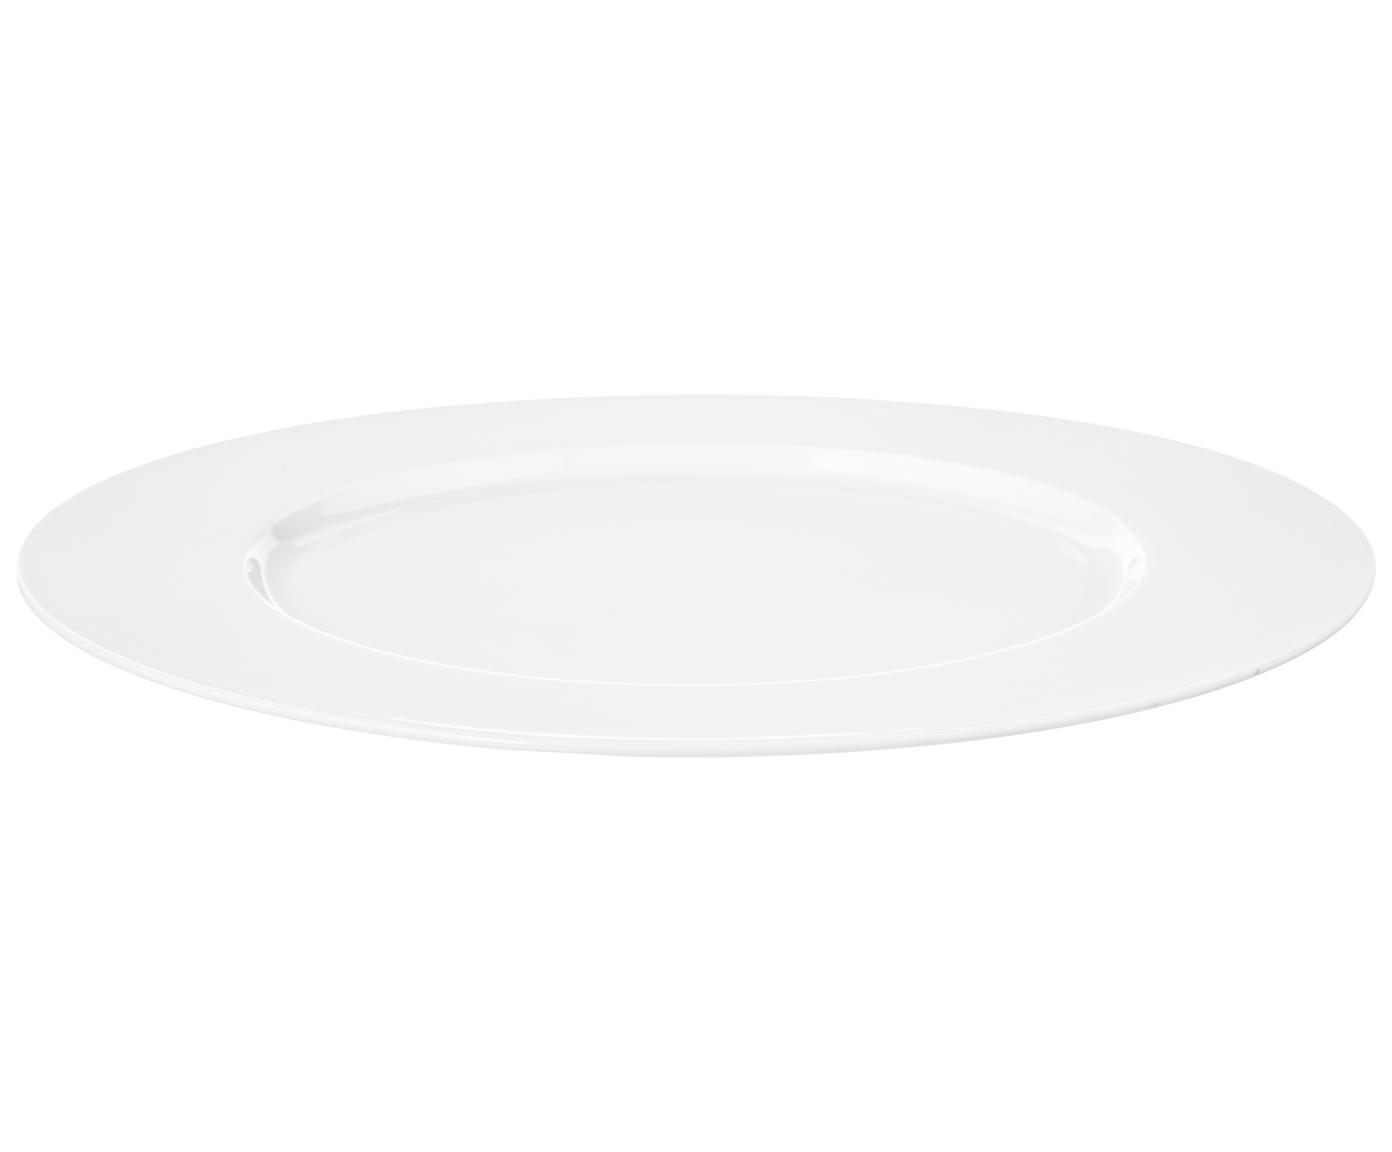 Fine Bone China Platzteller à Table in Weiß, Fine Bone China, Weiß, Ø 32 cm